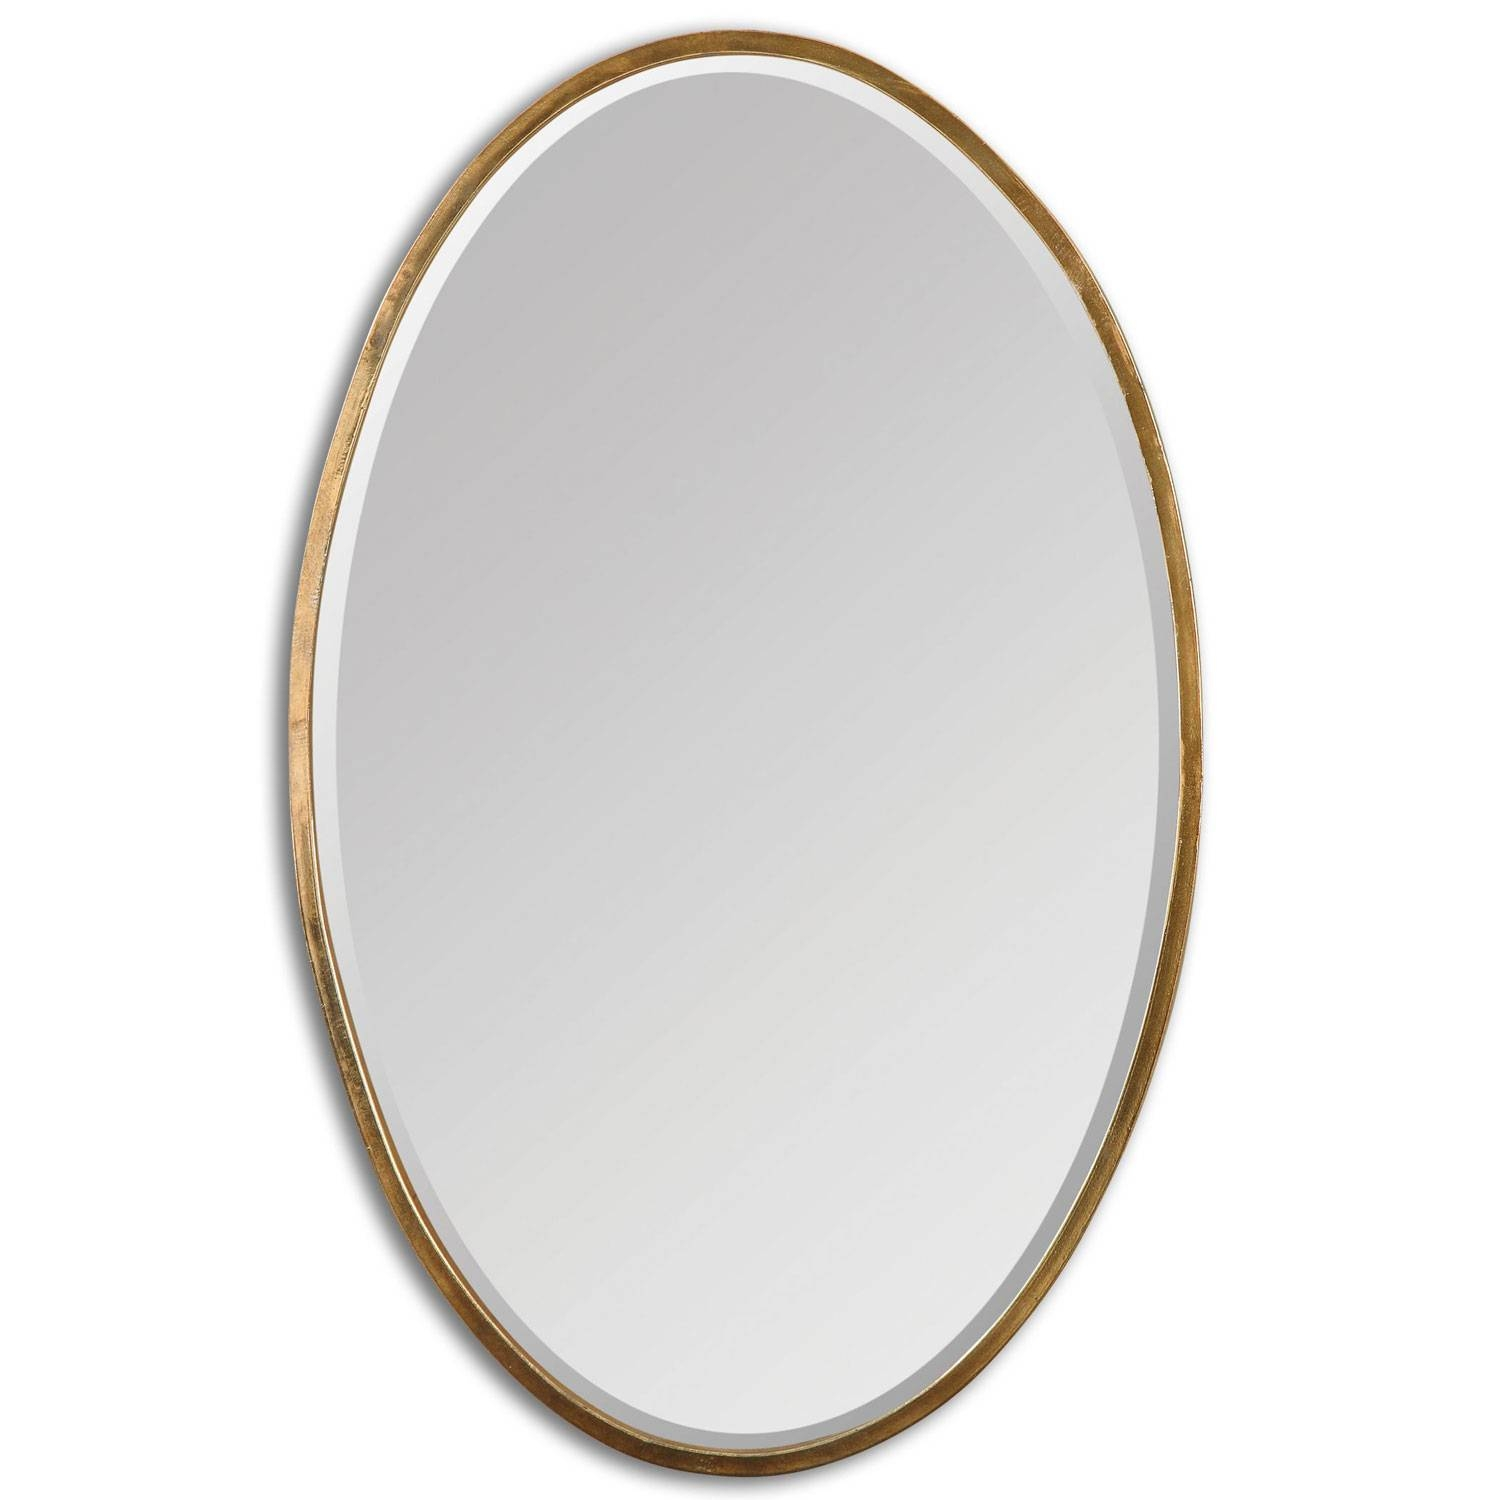 Herleva Oval Antique Gold Oval Mirror Uttermost Wall Mirror within Large Oval Wall Mirrors (Image 7 of 15)